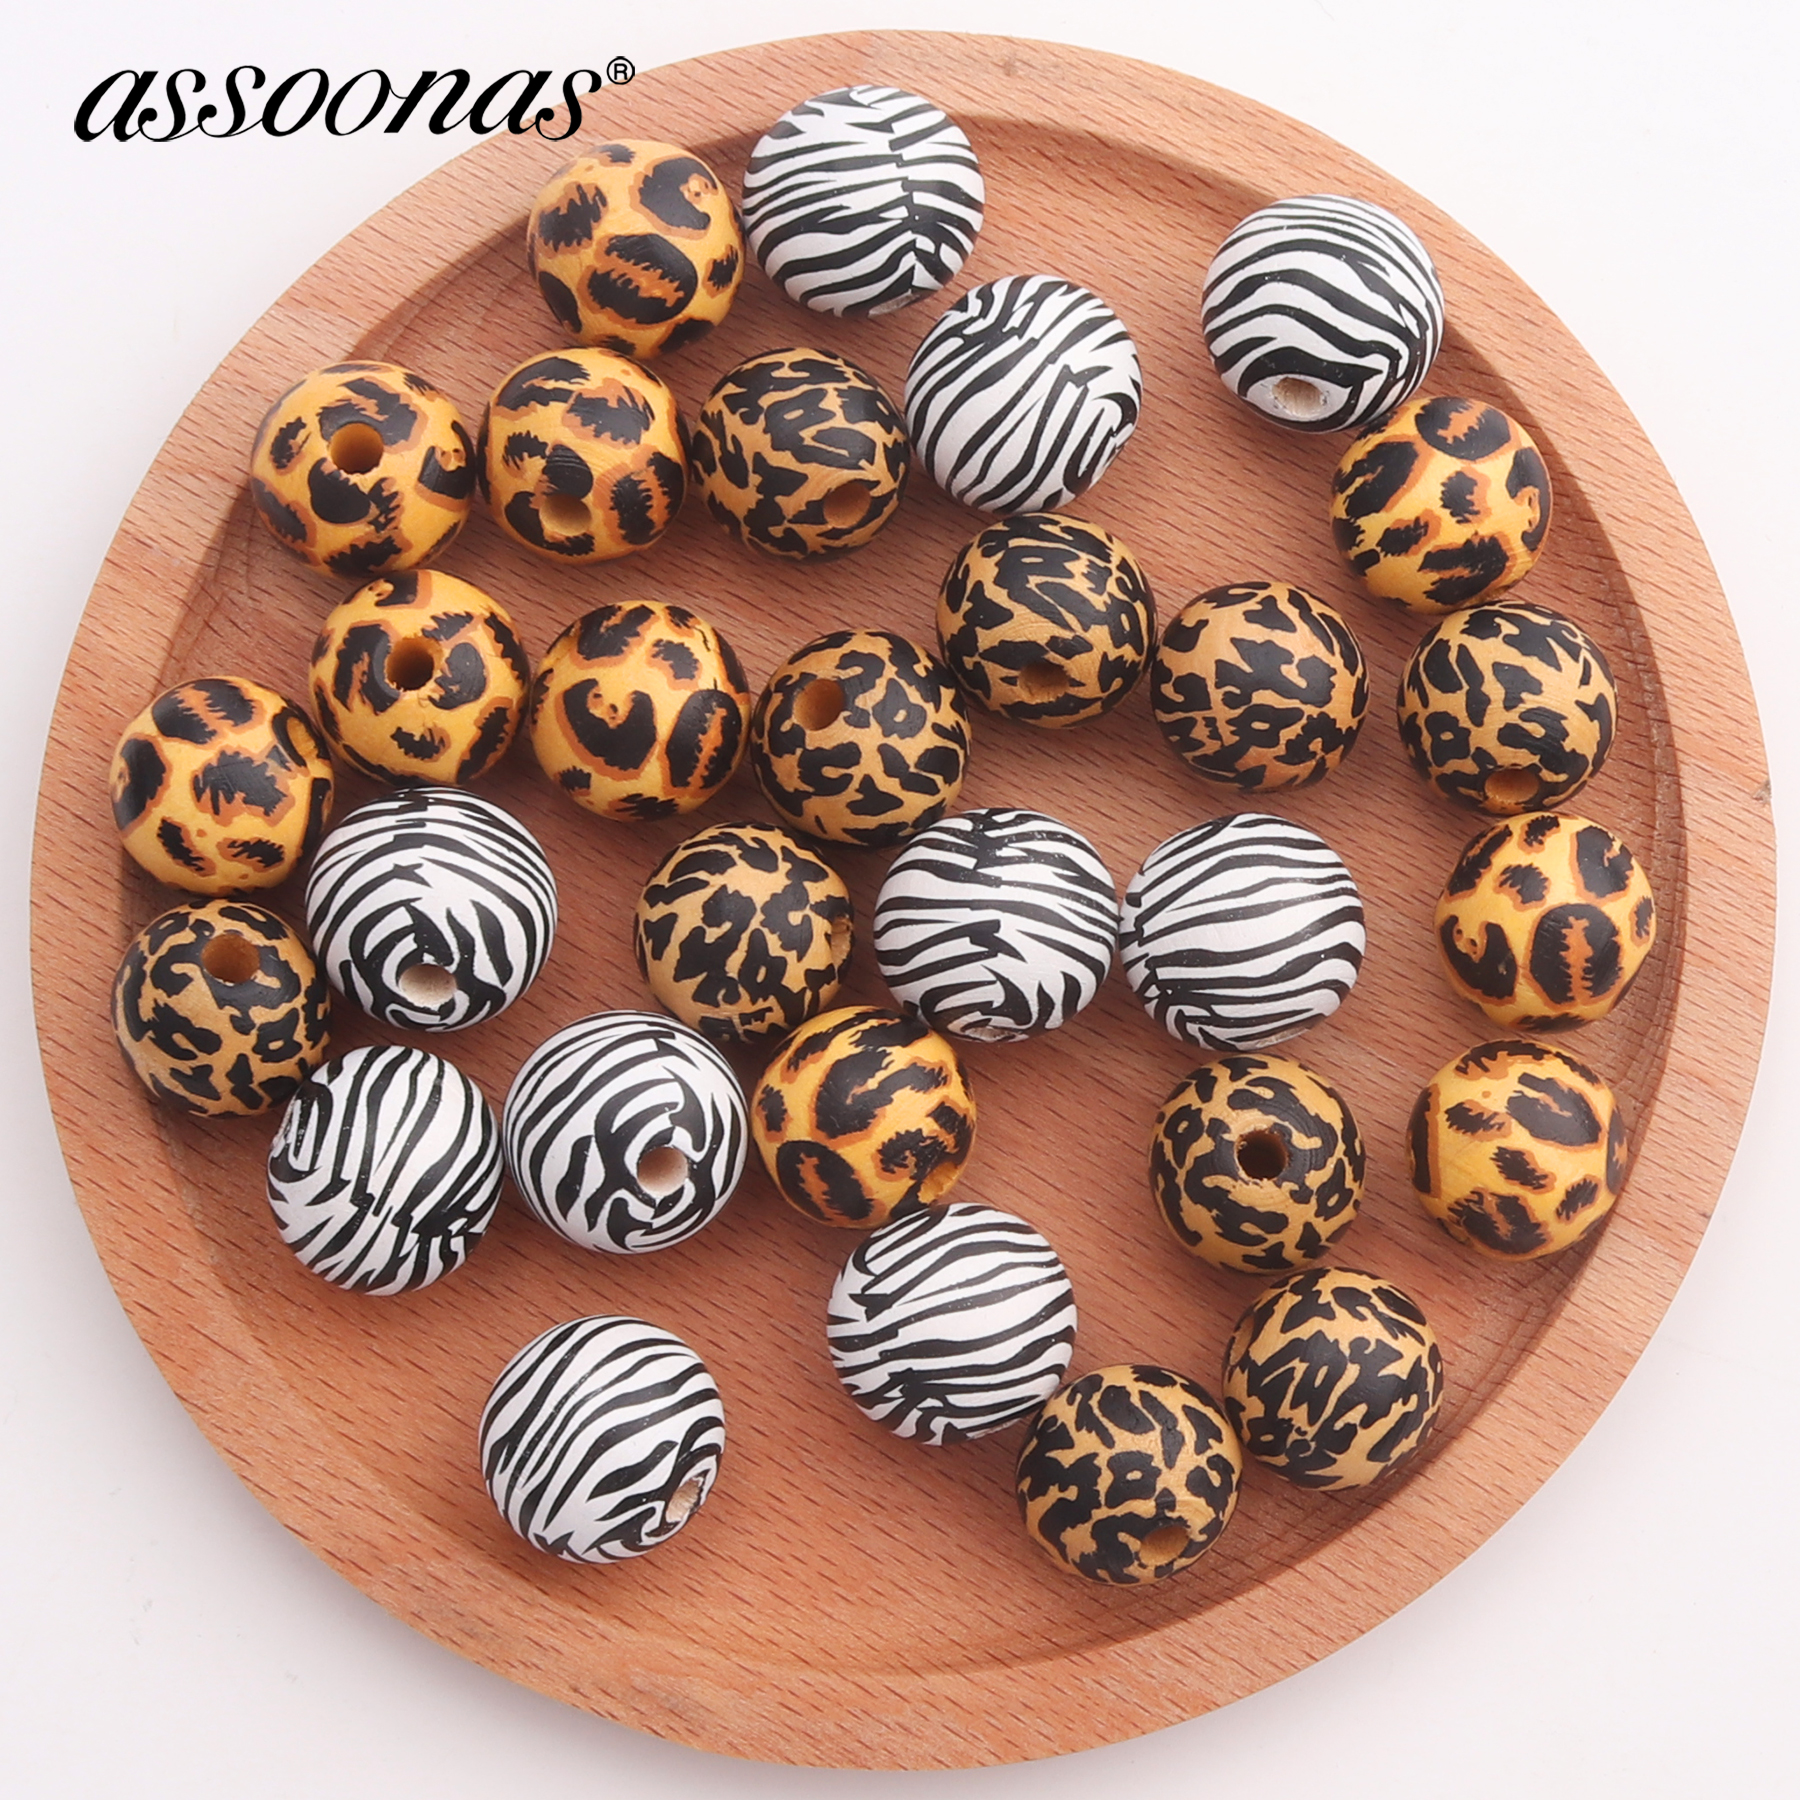 Assoonas M413,jewelry Accessories,big Beads Accessories,diy Pendant,leopard Print,ball Shape,wood Jewelry Making,diy Earrings